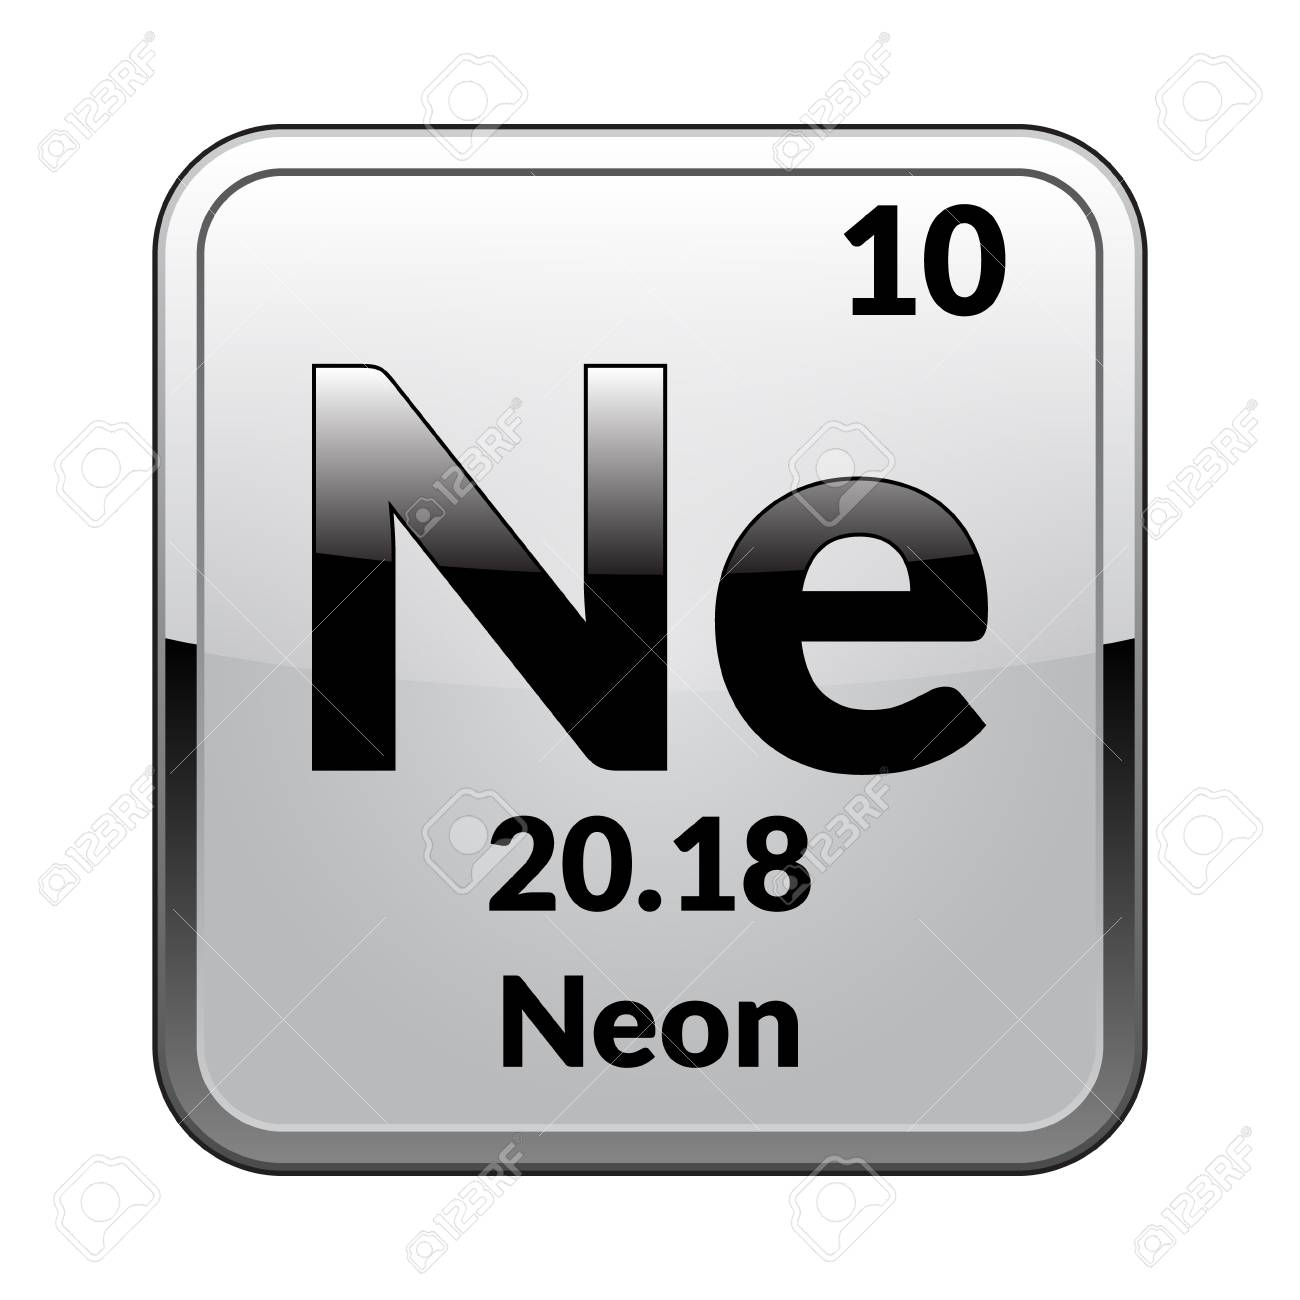 Attractive Neon Symbol.Chemical Element Of The Periodic Table On A Glossy White  Background In A